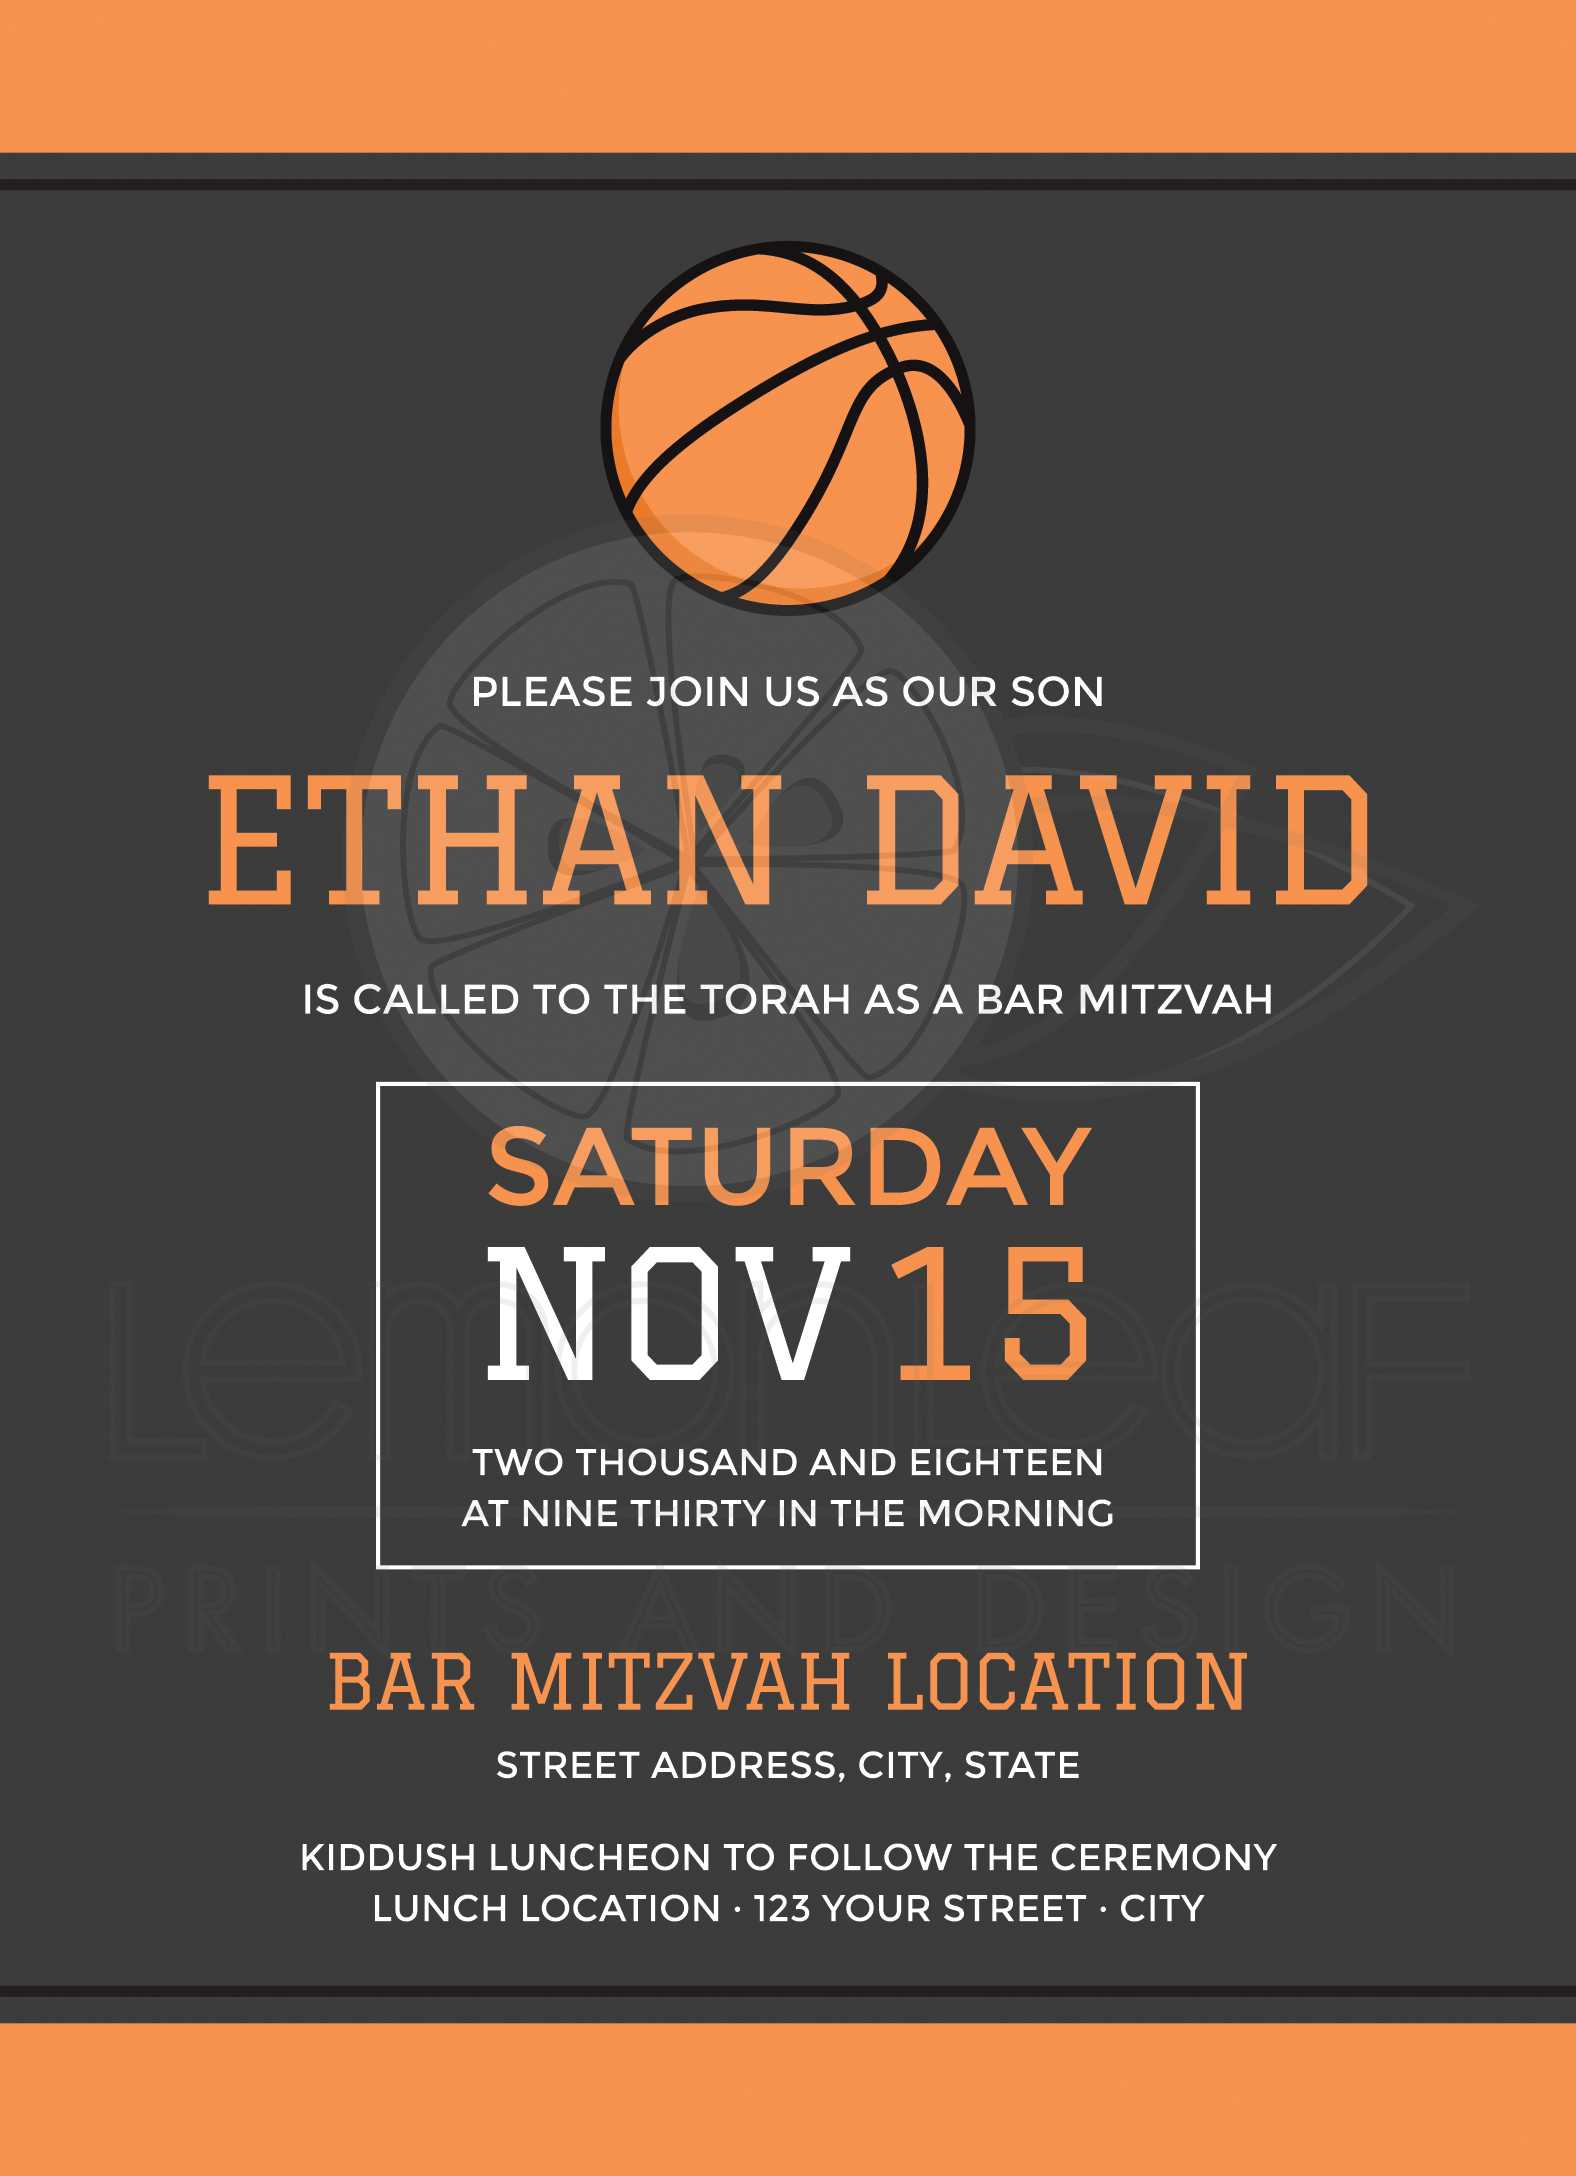 Basketball bar mitzvah invitations modern design with ball and